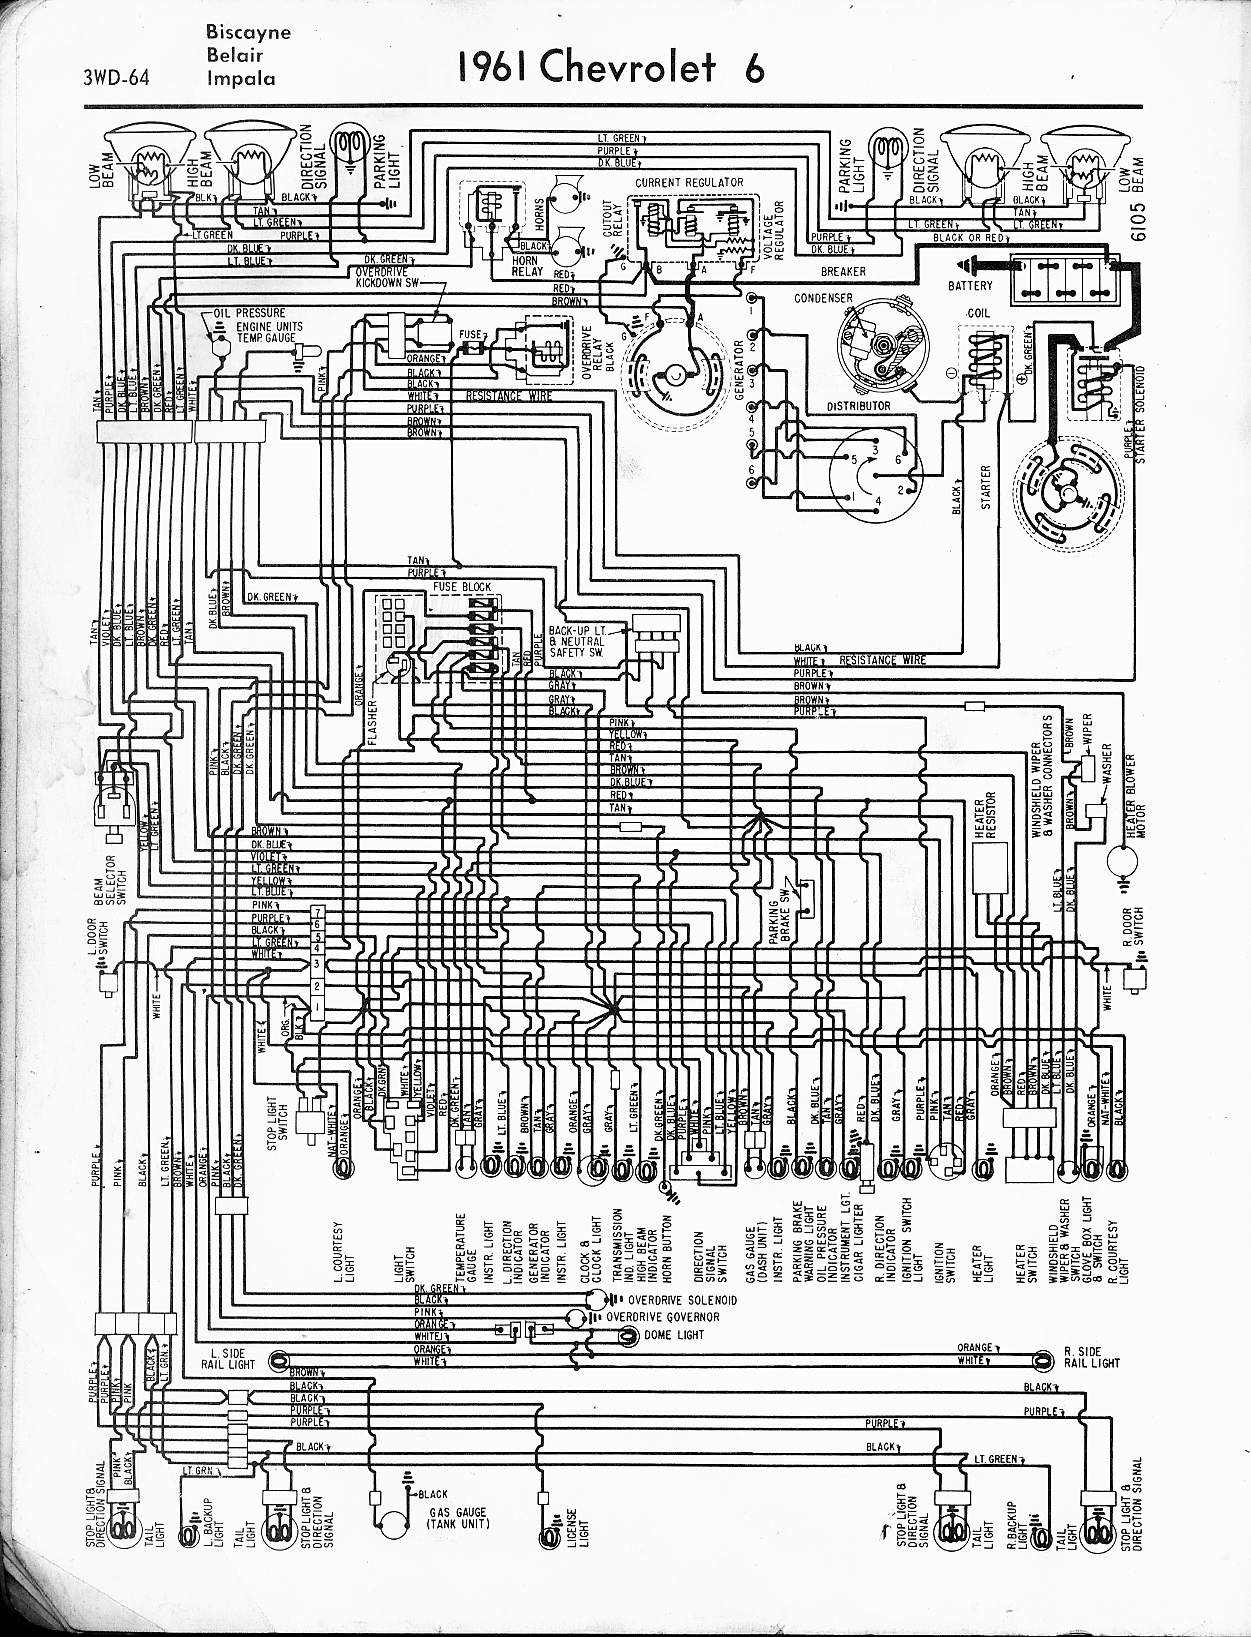 55 Chevy Fuse Box Diagram | Wiring Diagram on chevy light switch wiring, chevy window switch wiring, chevy fuel pump relay wiring, chevy speaker wiring, chevy ignition coil wiring, chevy horn relay wiring, chevy steering column wiring, chevy starter wiring, chevy neutral safety switch wiring, chevy voltage regulator wiring, chevy headlight switch wiring, chevy fuel gauge wiring, chevy wiper motor wiring, chevy dome light wiring, chevy engine wiring,